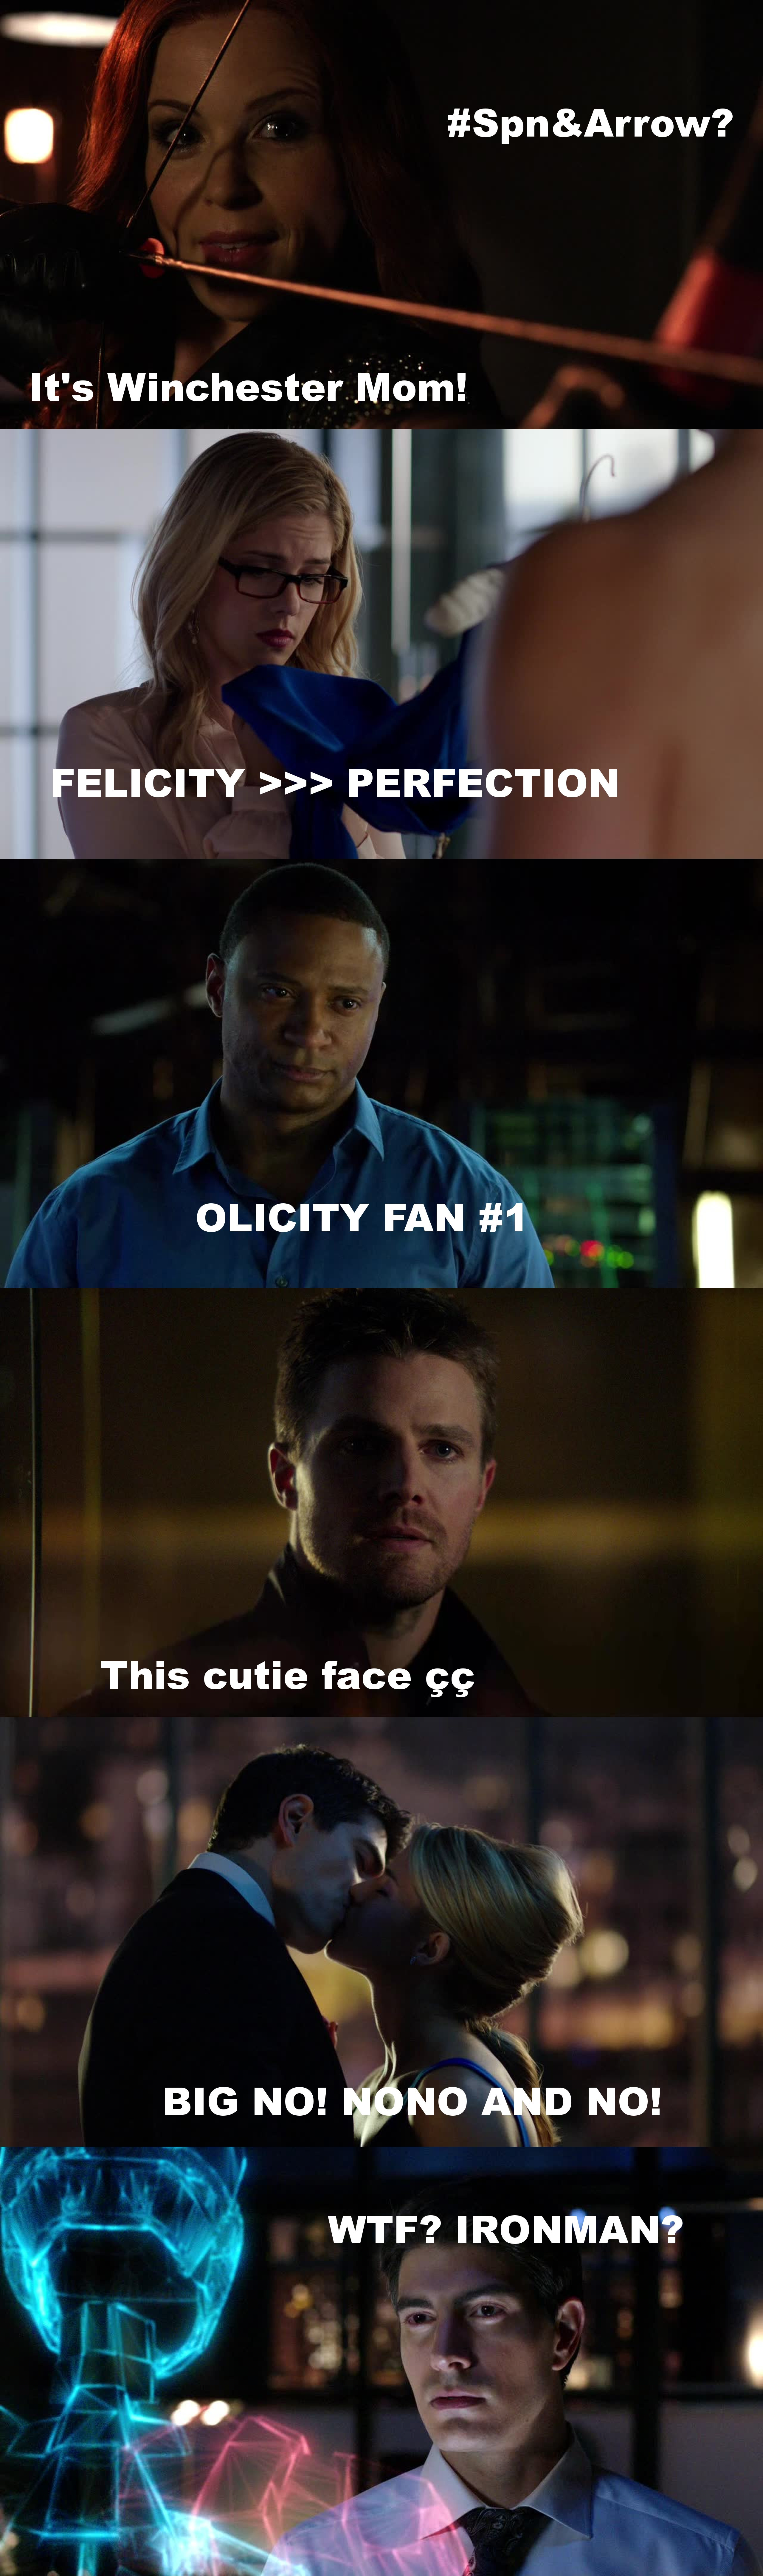 I think this episode crack my heart and.my feels!! I NEED OLICITY NOW. Poor Oliver, but Felicity can't wait him forever, i know that Olicity is endgame! u.u